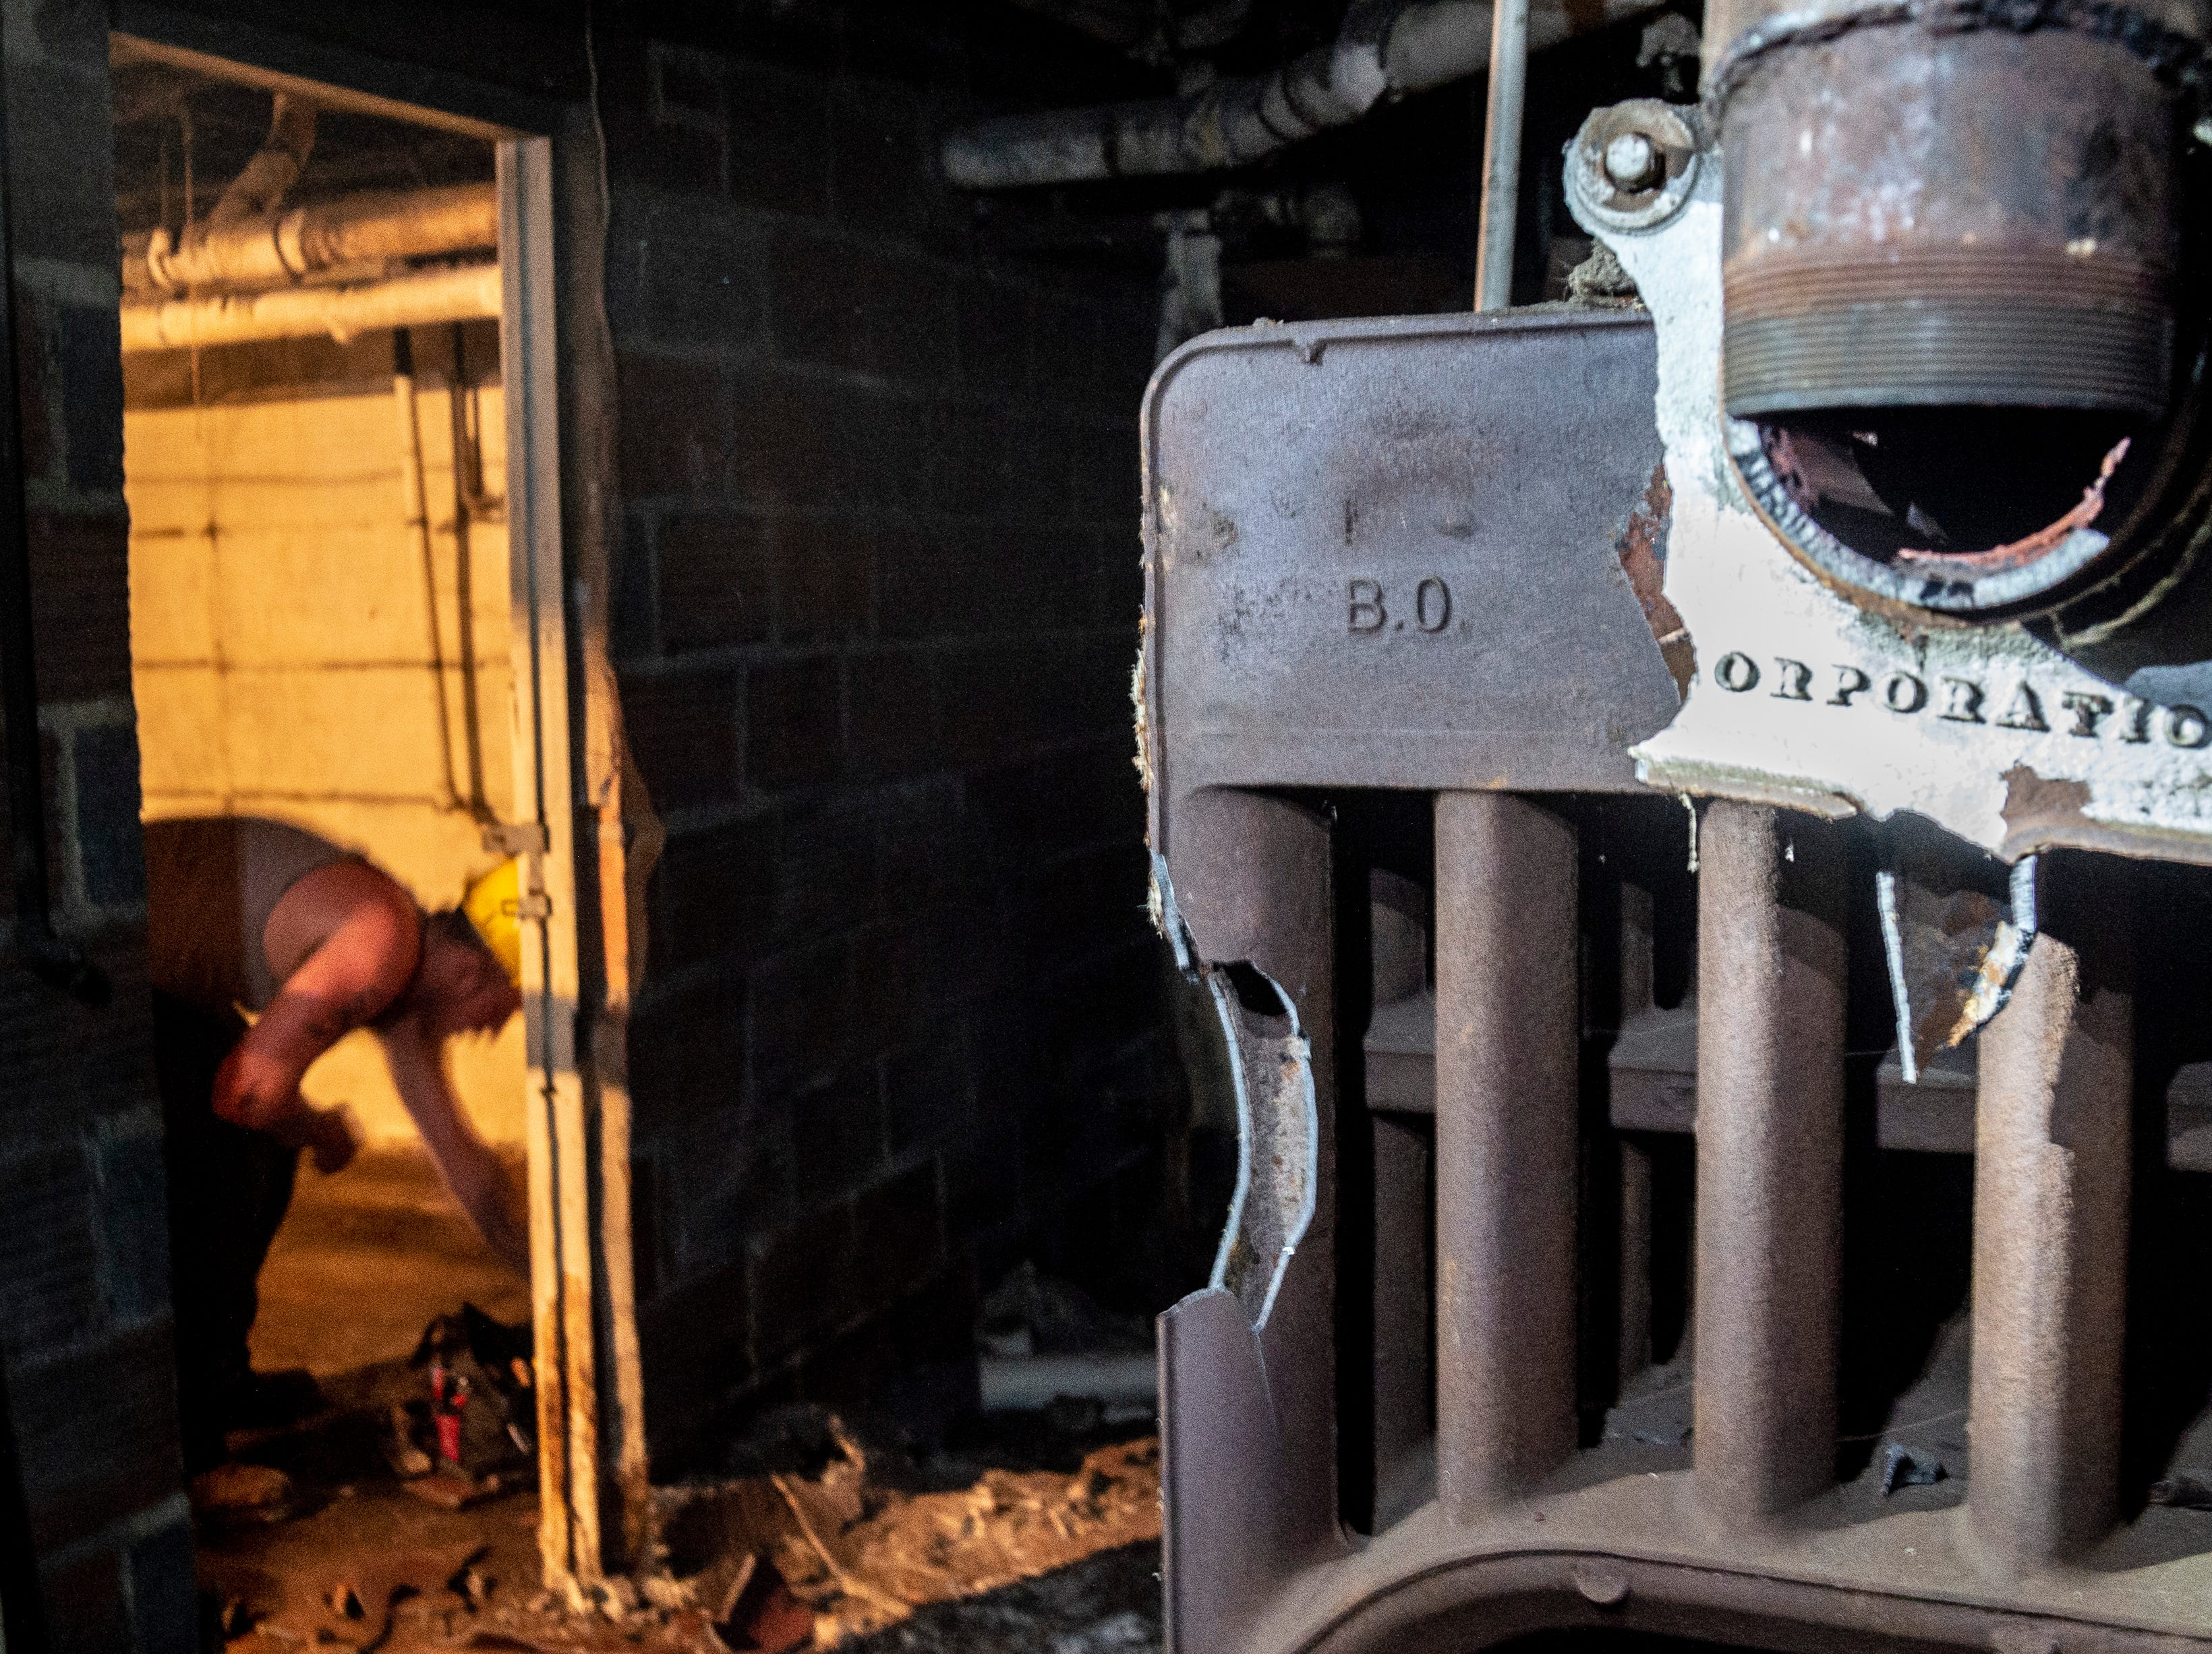 The boiler room in the basement of the Readmore building in downtown Richmond is seen during demoliton work on Sept. 4, 2018.